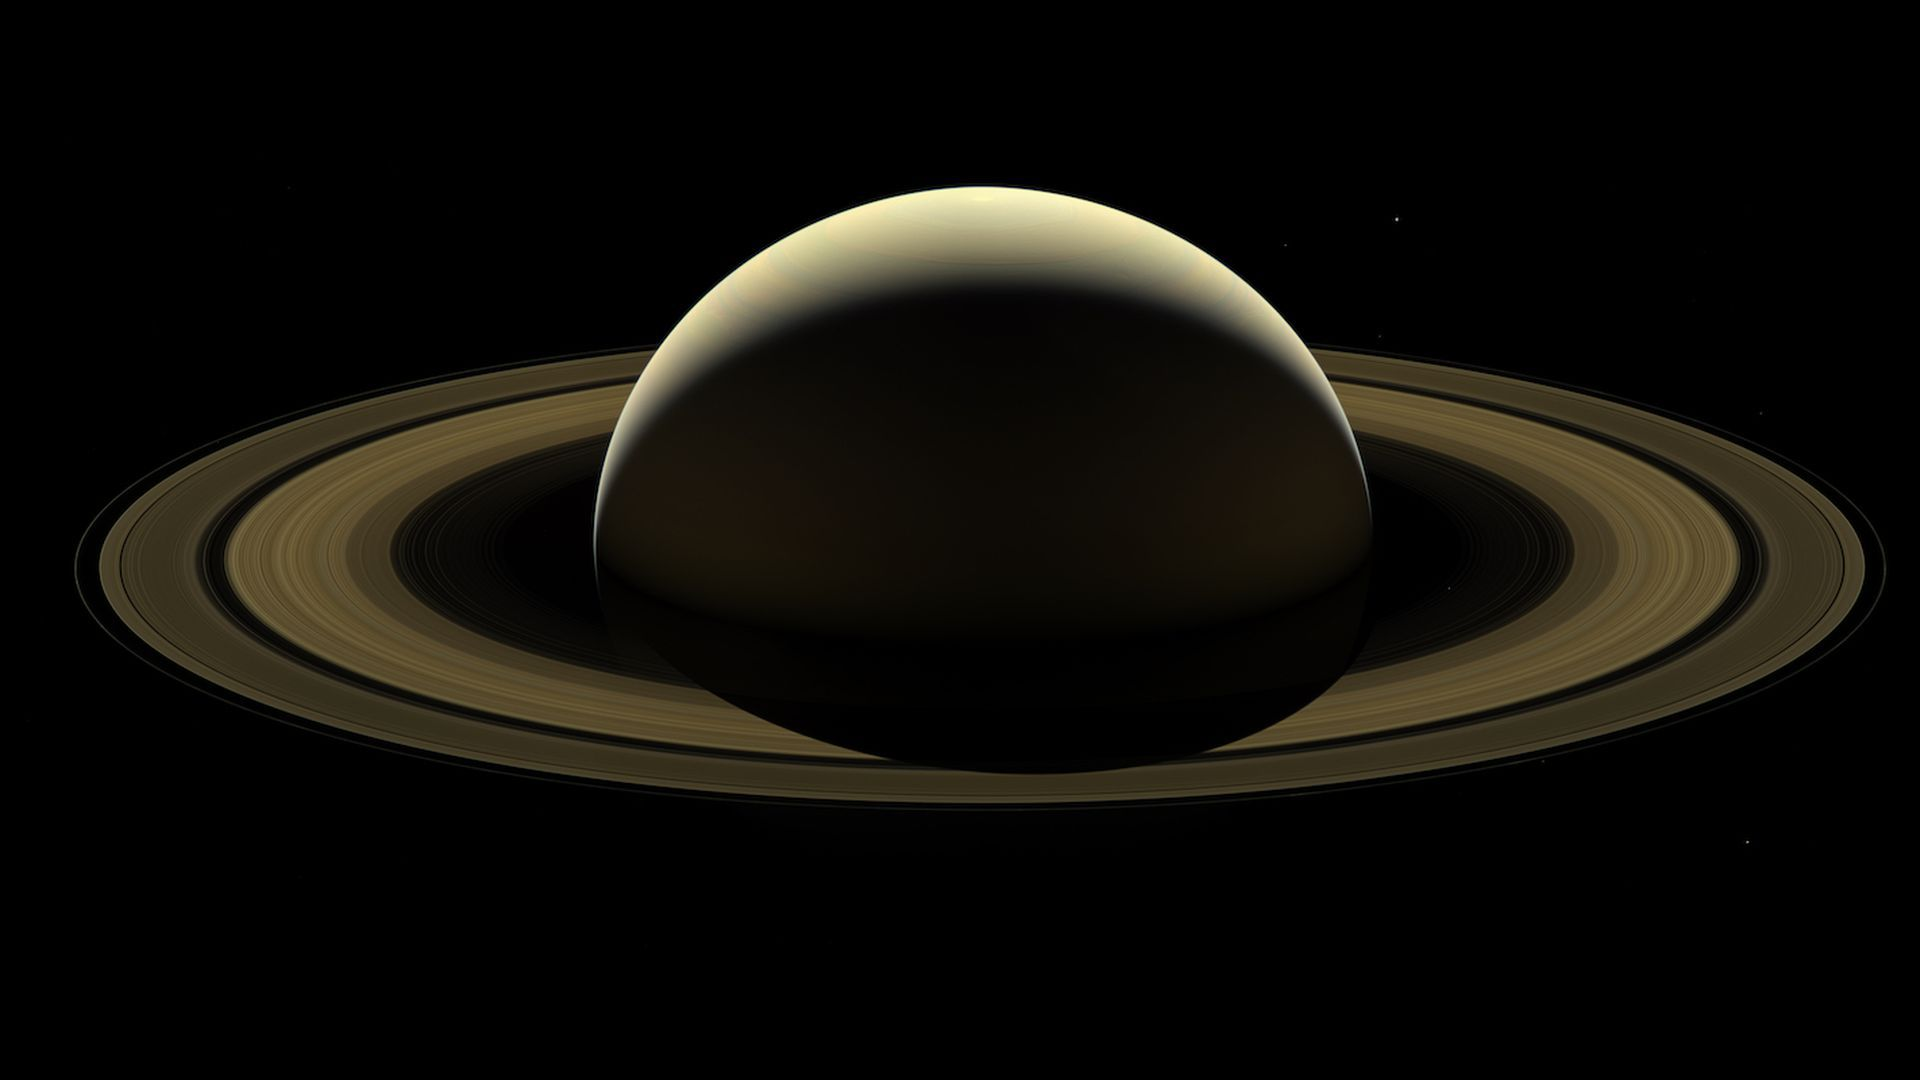 Saturn beats out Jupiter as king of the moons